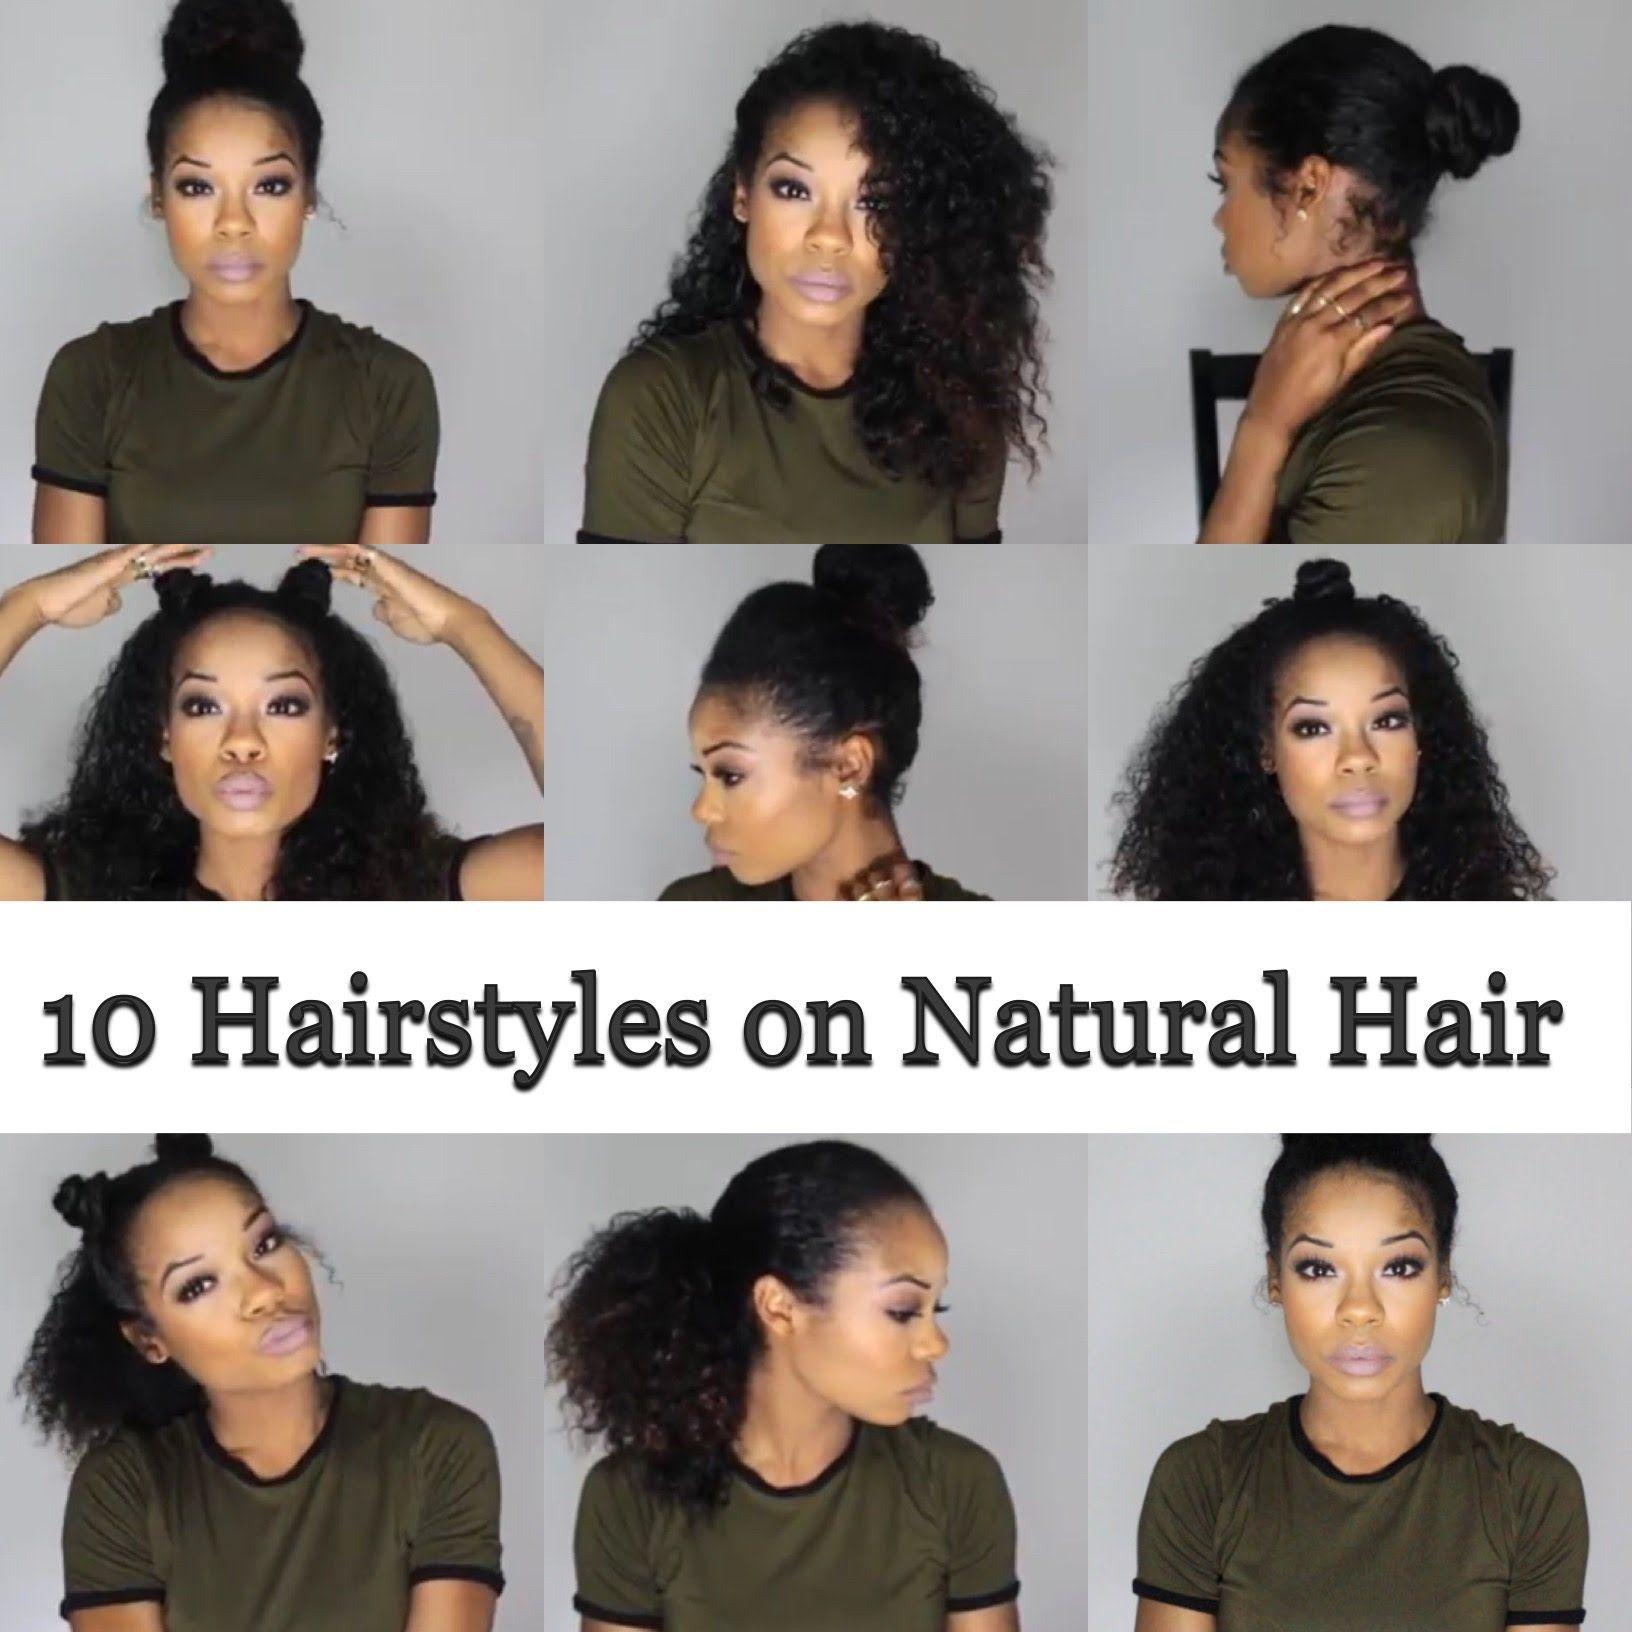 Natural Hairstyles For Short 3b Hair Hairstyles Hairstylesforshorthair Natural Shor Natural Hair Styles Easy Natural Hair Styles Quick Natural Hair Styles